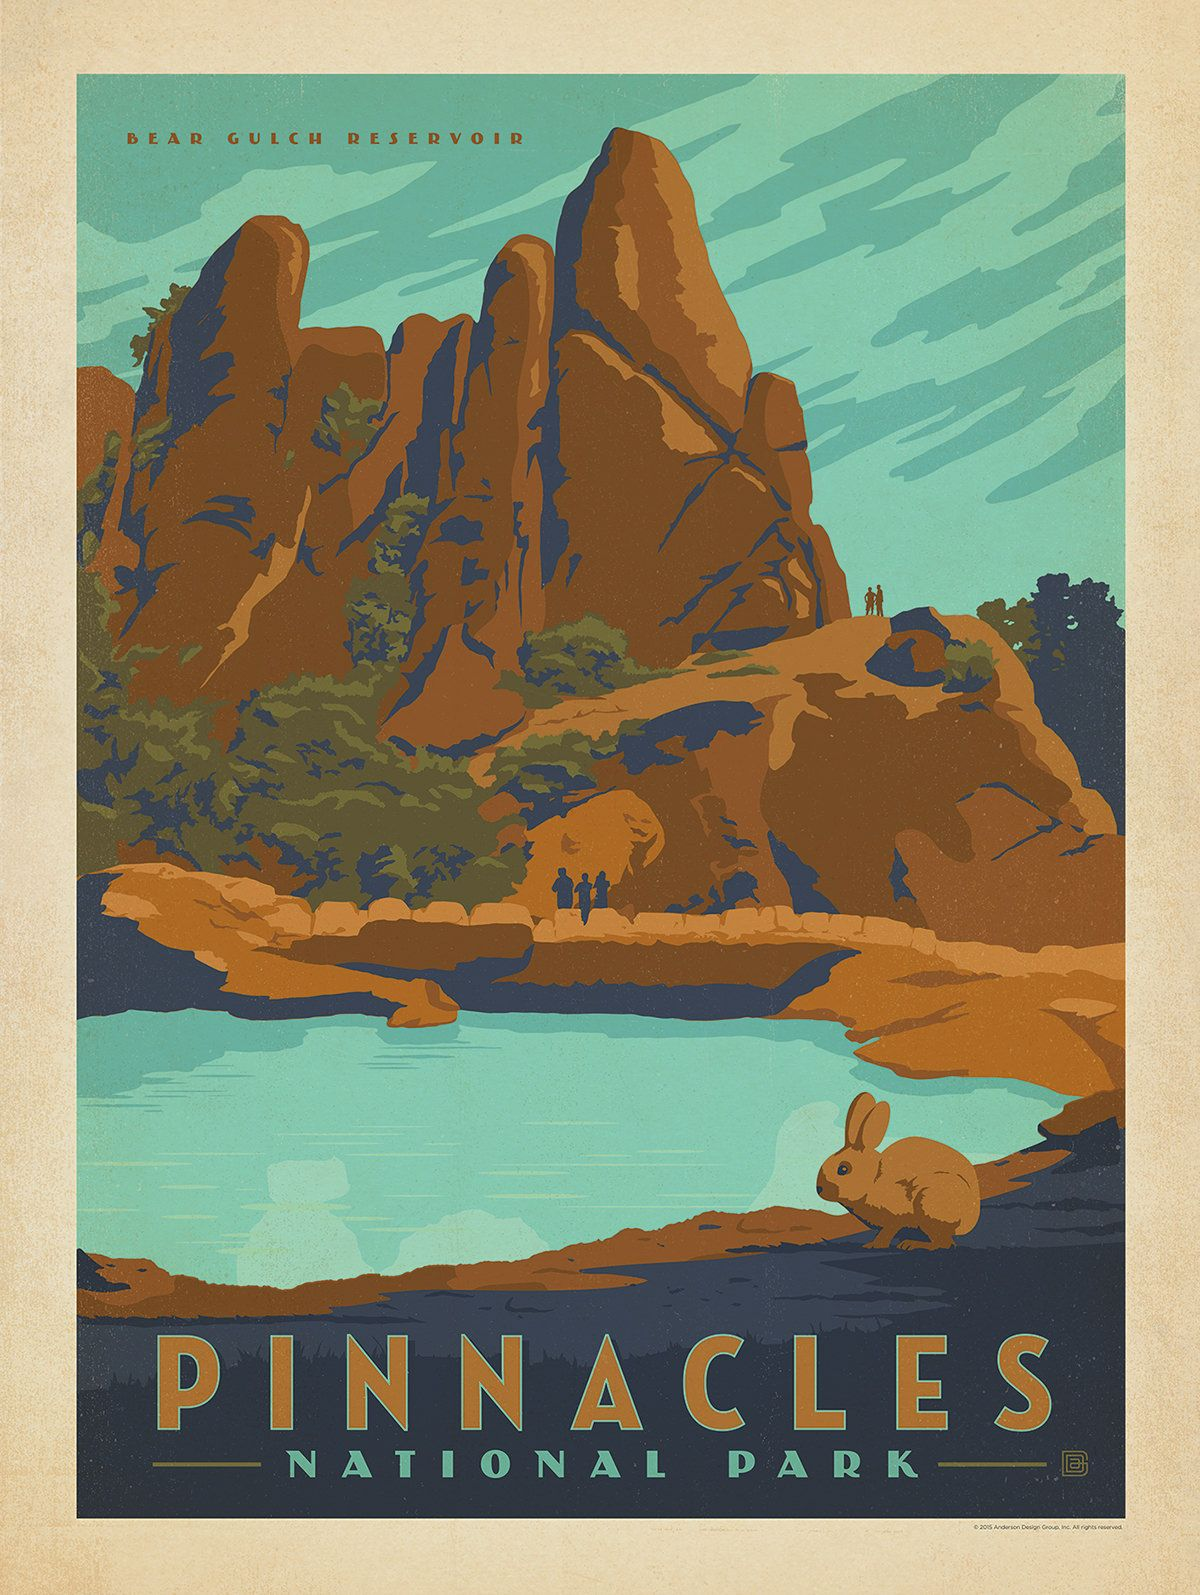 American National Parks National Park Posters American National Parks Pinnacles National Park